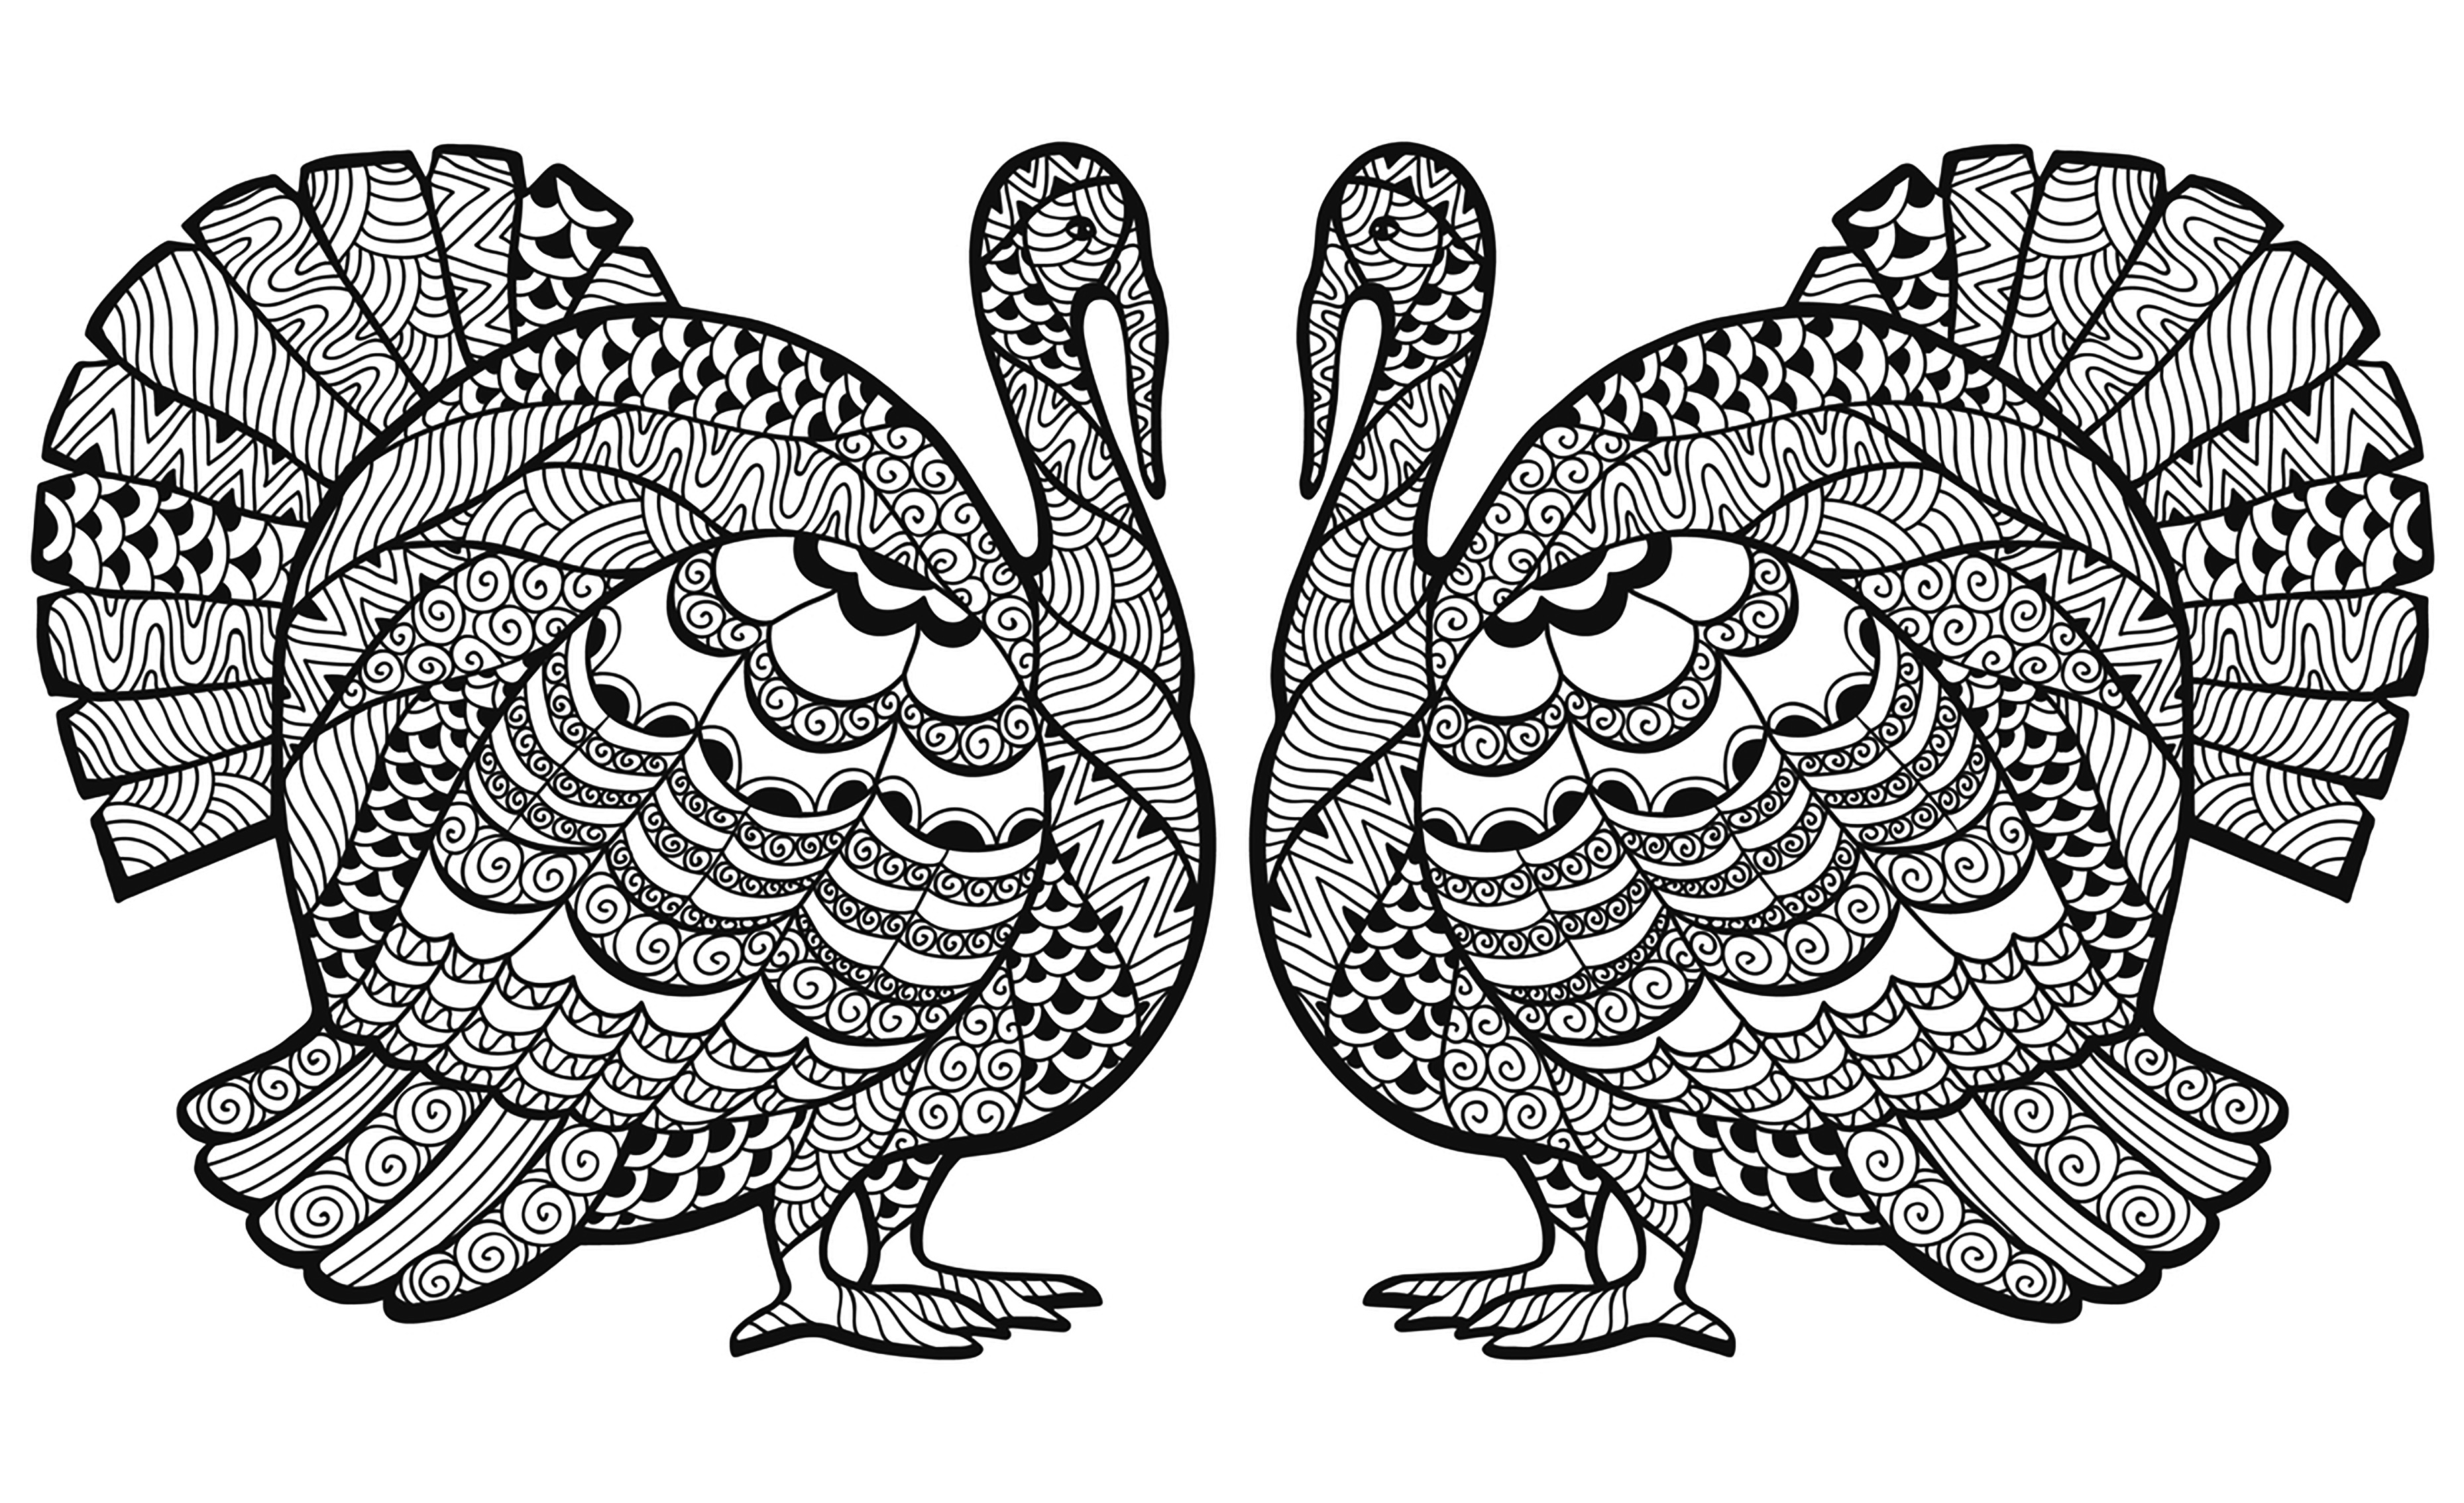 Thanksgiving Day Coloring Pages Free Coloring Books Turkey To Color Printable Picture Inspirations